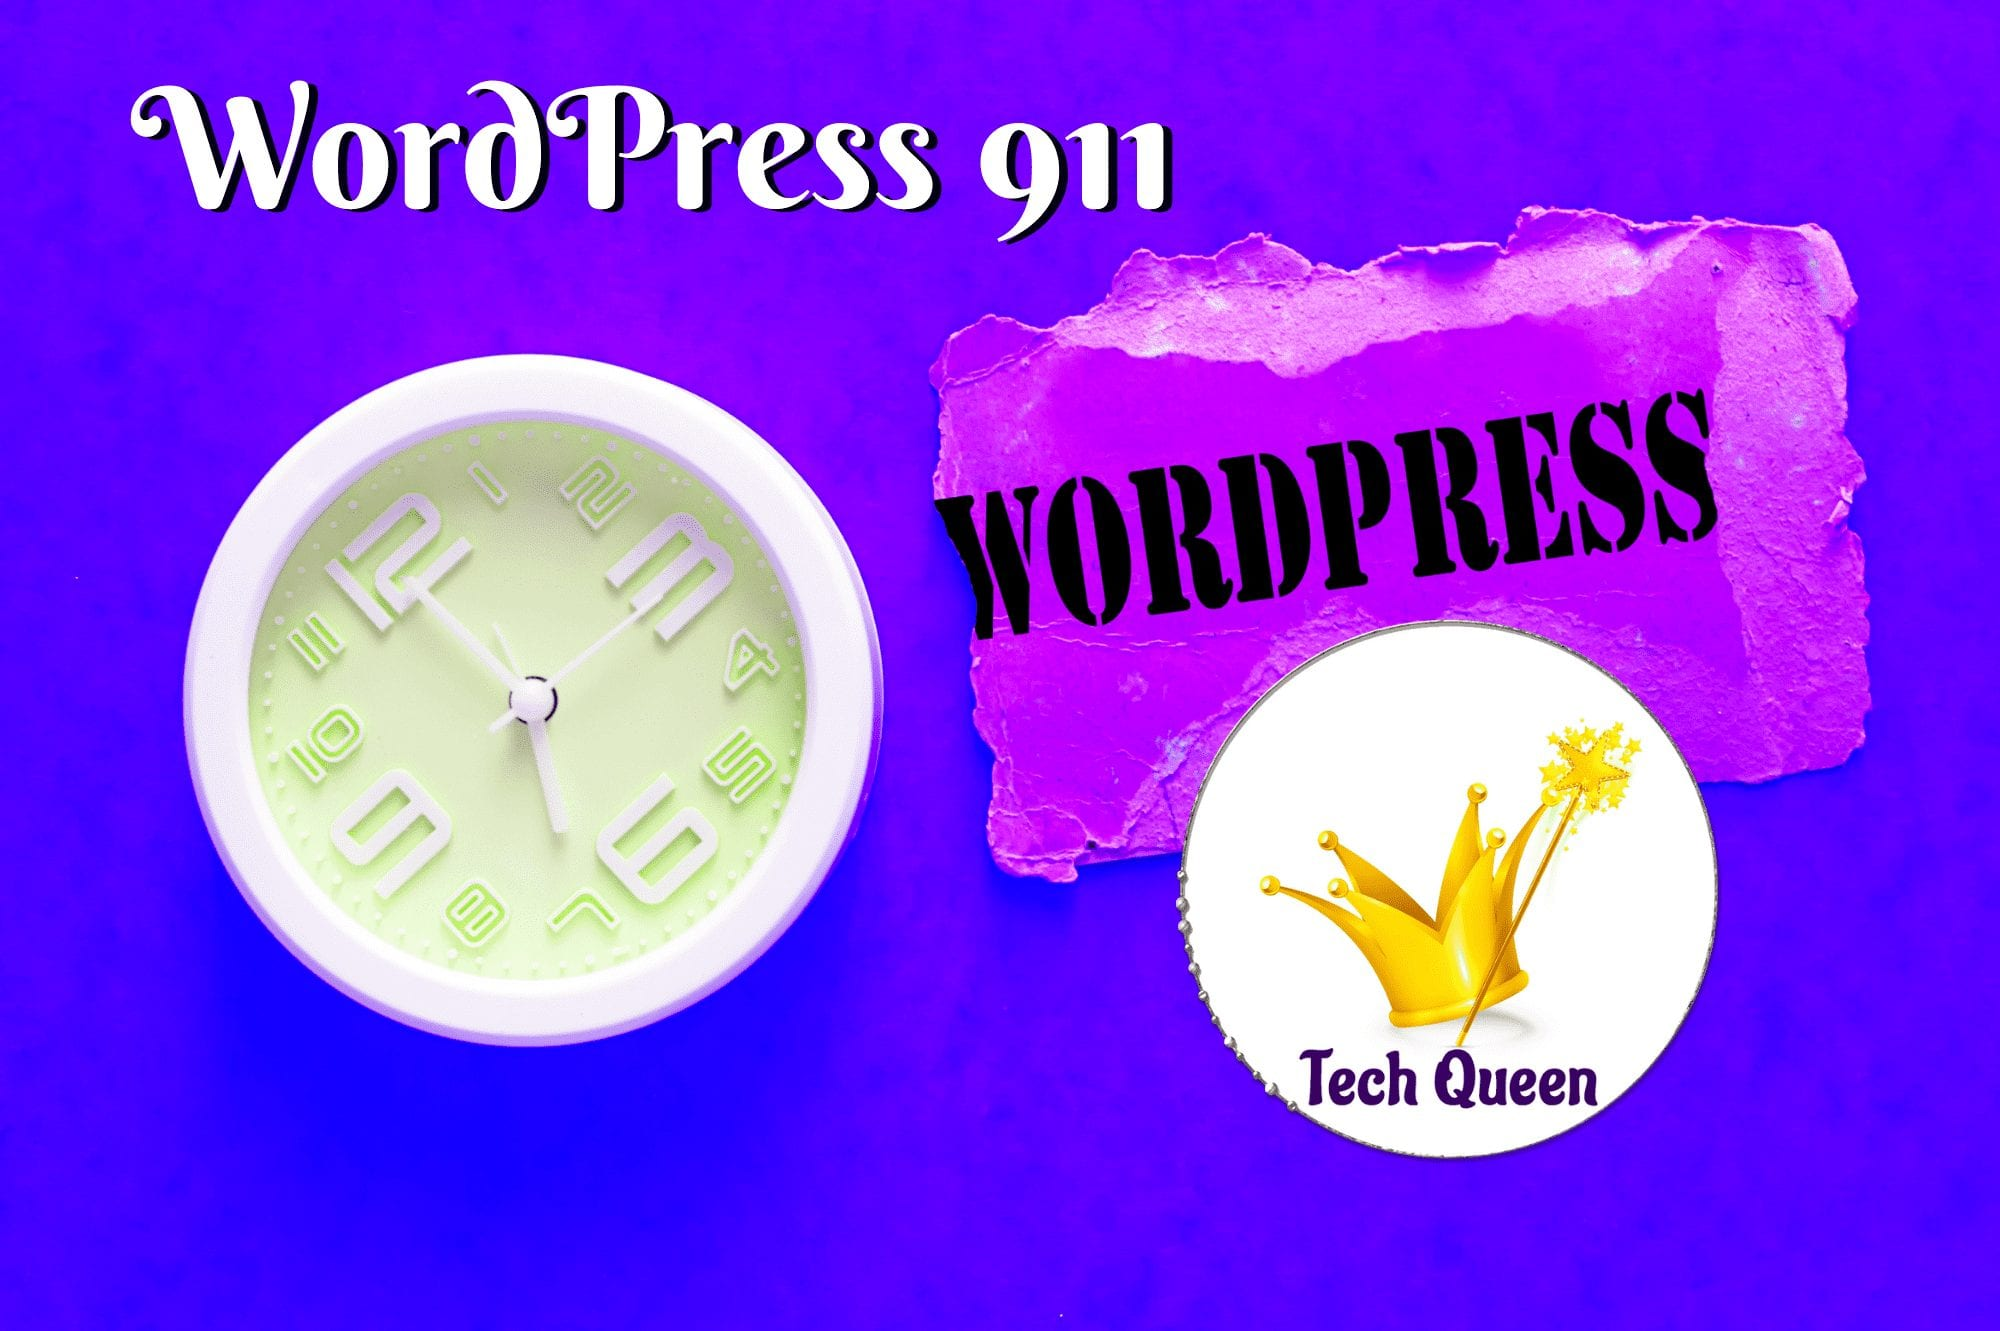 Wordpress 911 Services For People Pleasing Service Providers - Techqueen